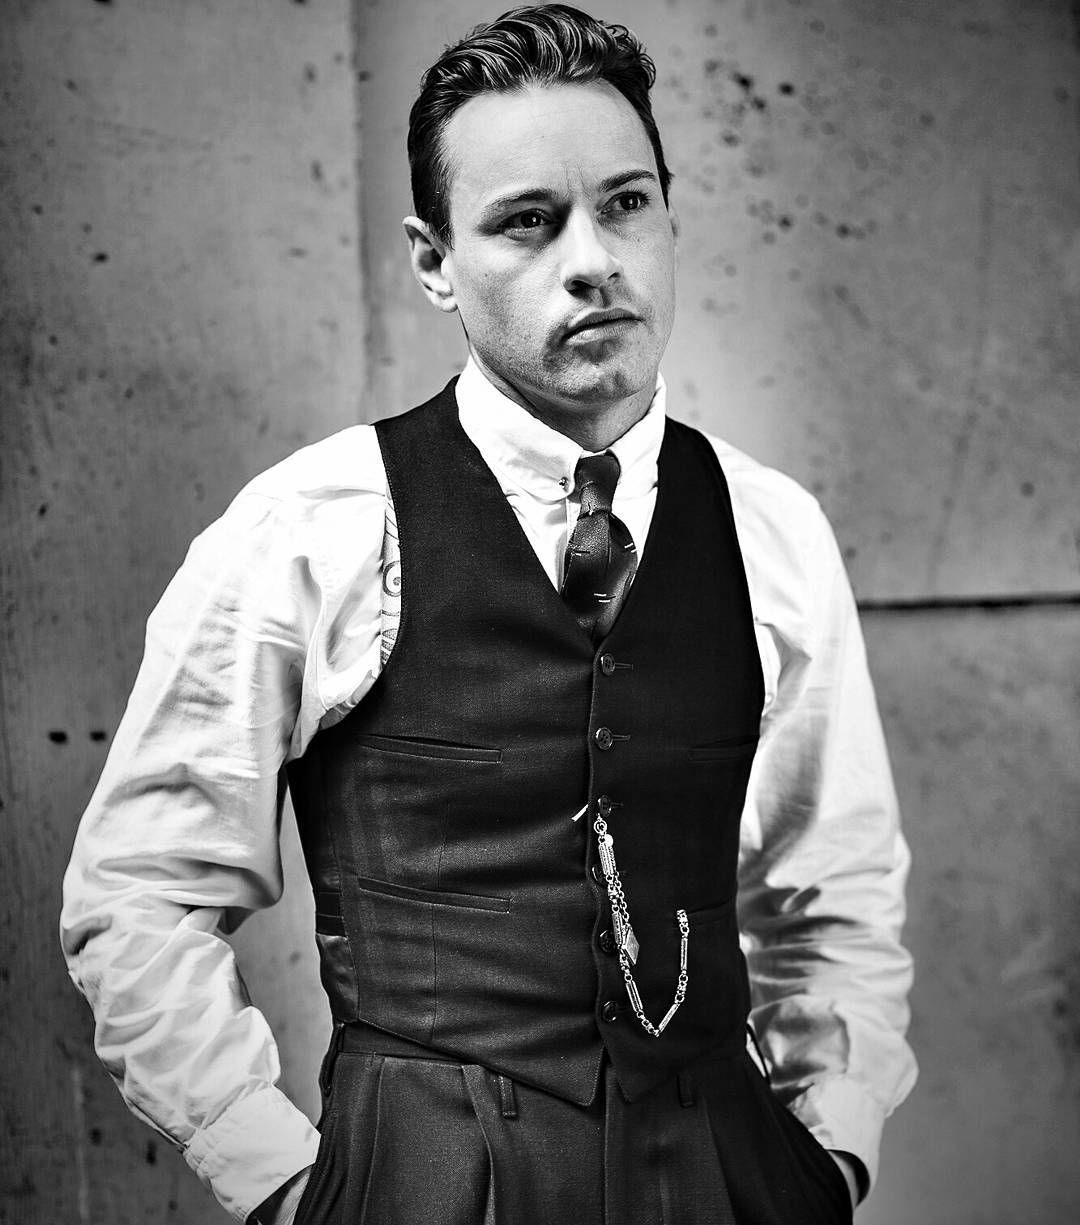 25 Great Gatsby Hairstyles For Men Bring Out The Dapper In You Gatsby Men Outfit Great Gatsby Men Outfit Gatsby Hair